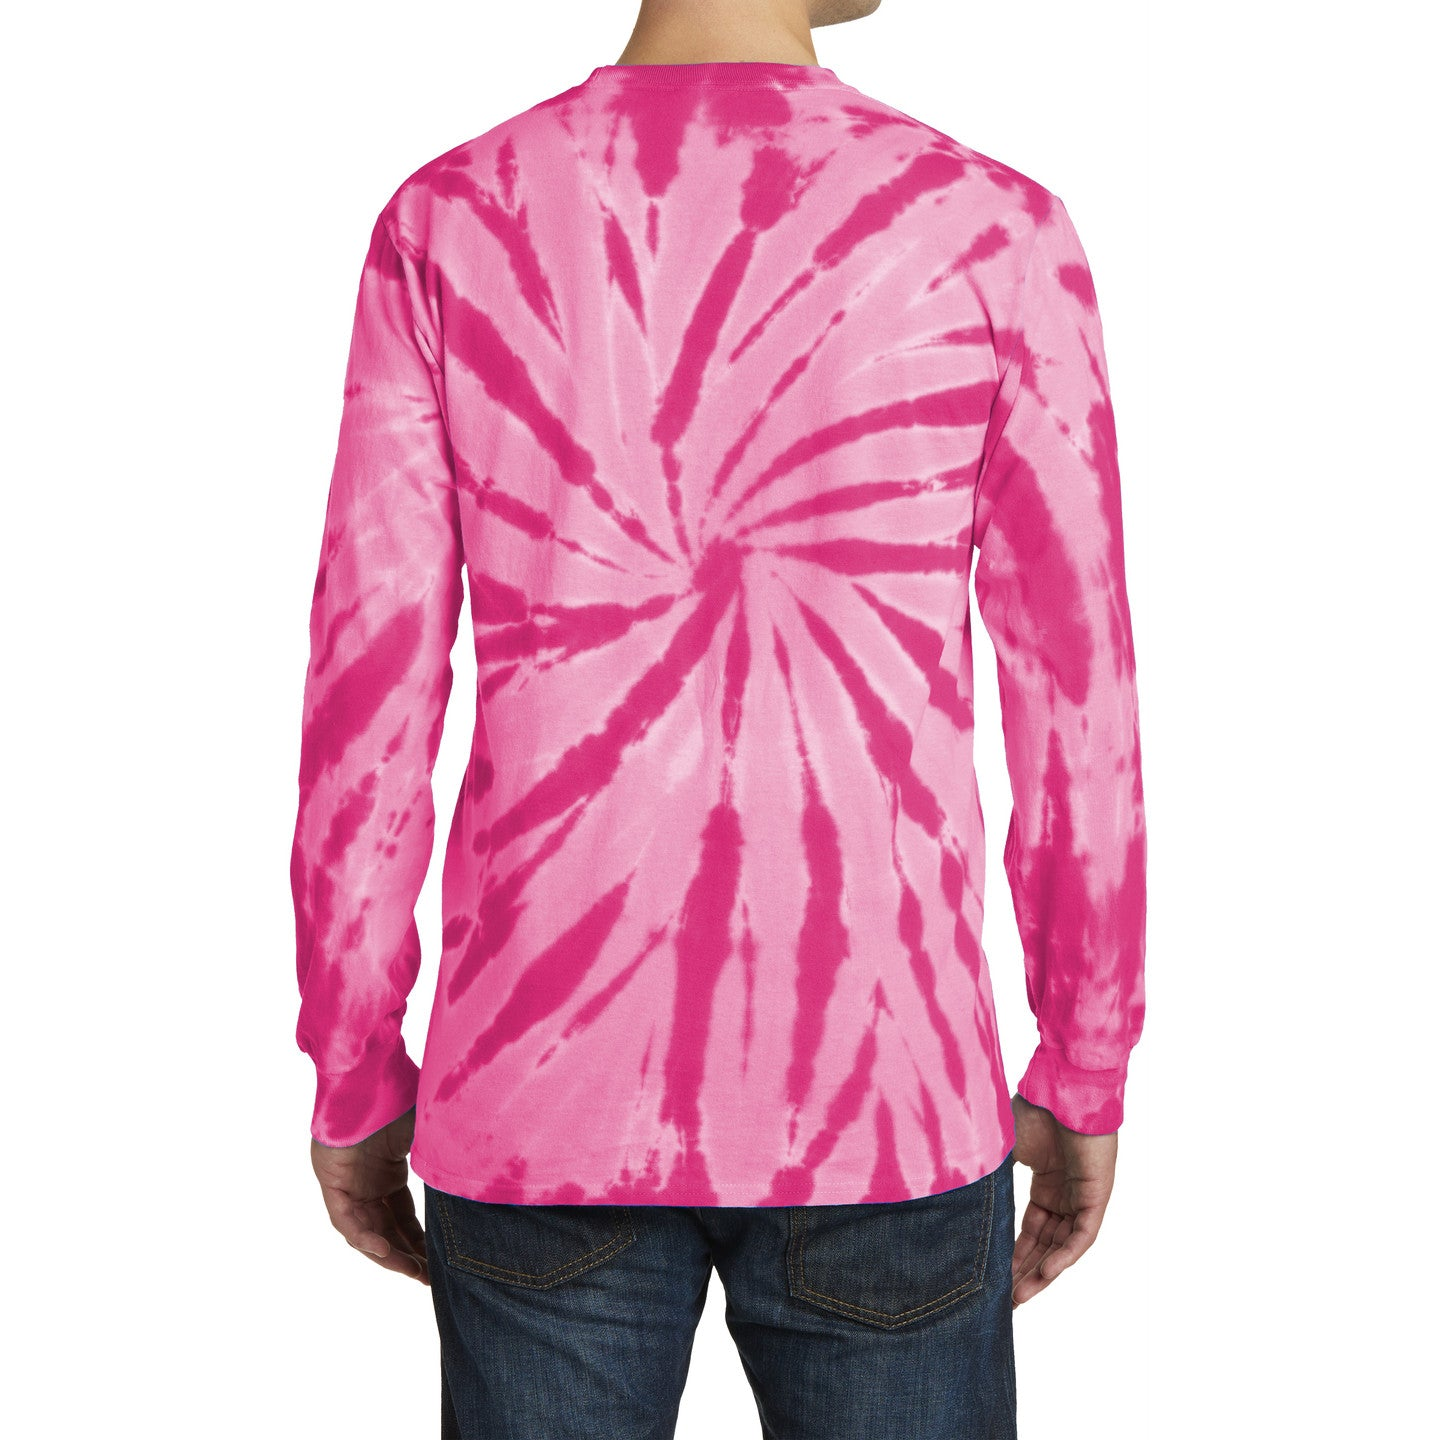 Men's Tie-Dye Long Sleeve Tee - Pink - Back